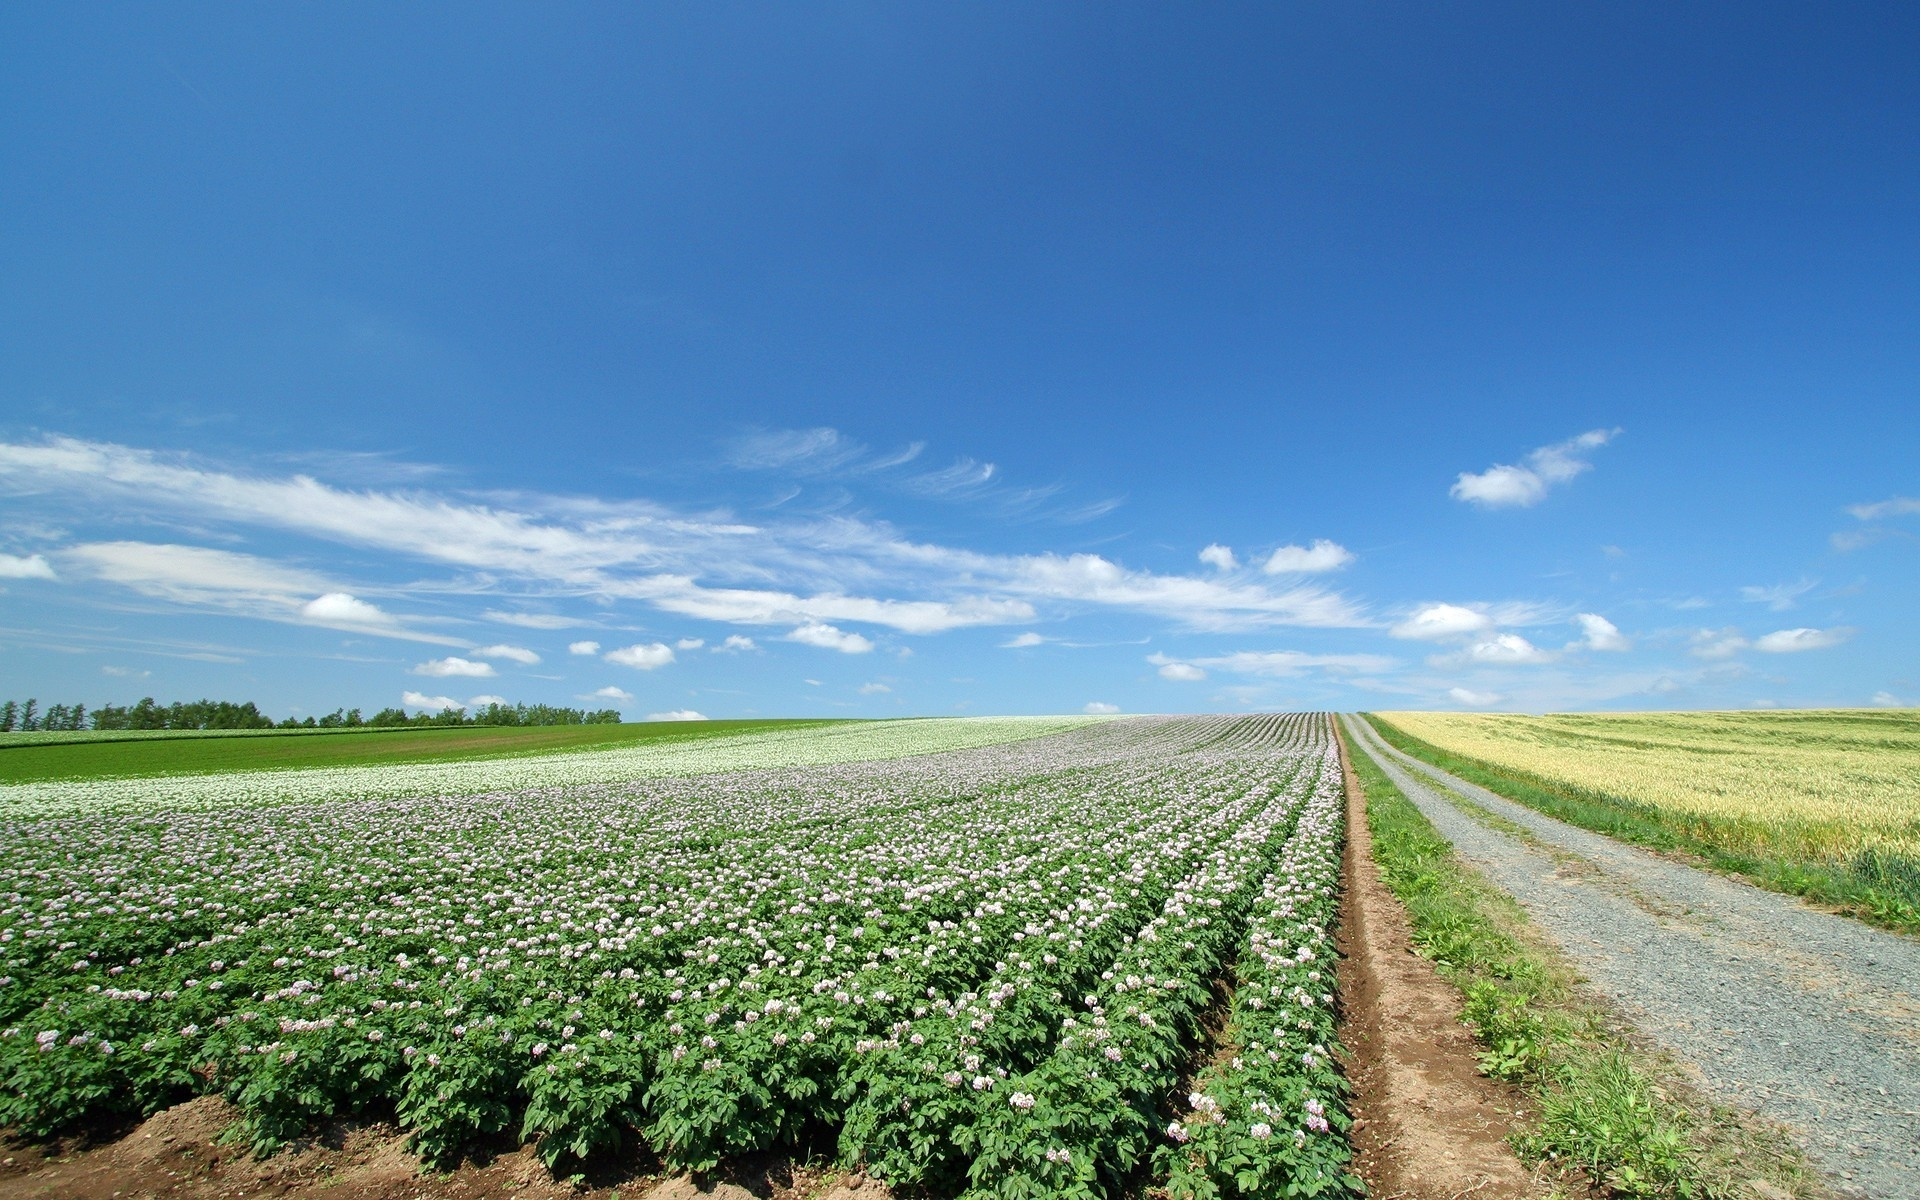 field_plantation_agriculture_30619_1920x1200